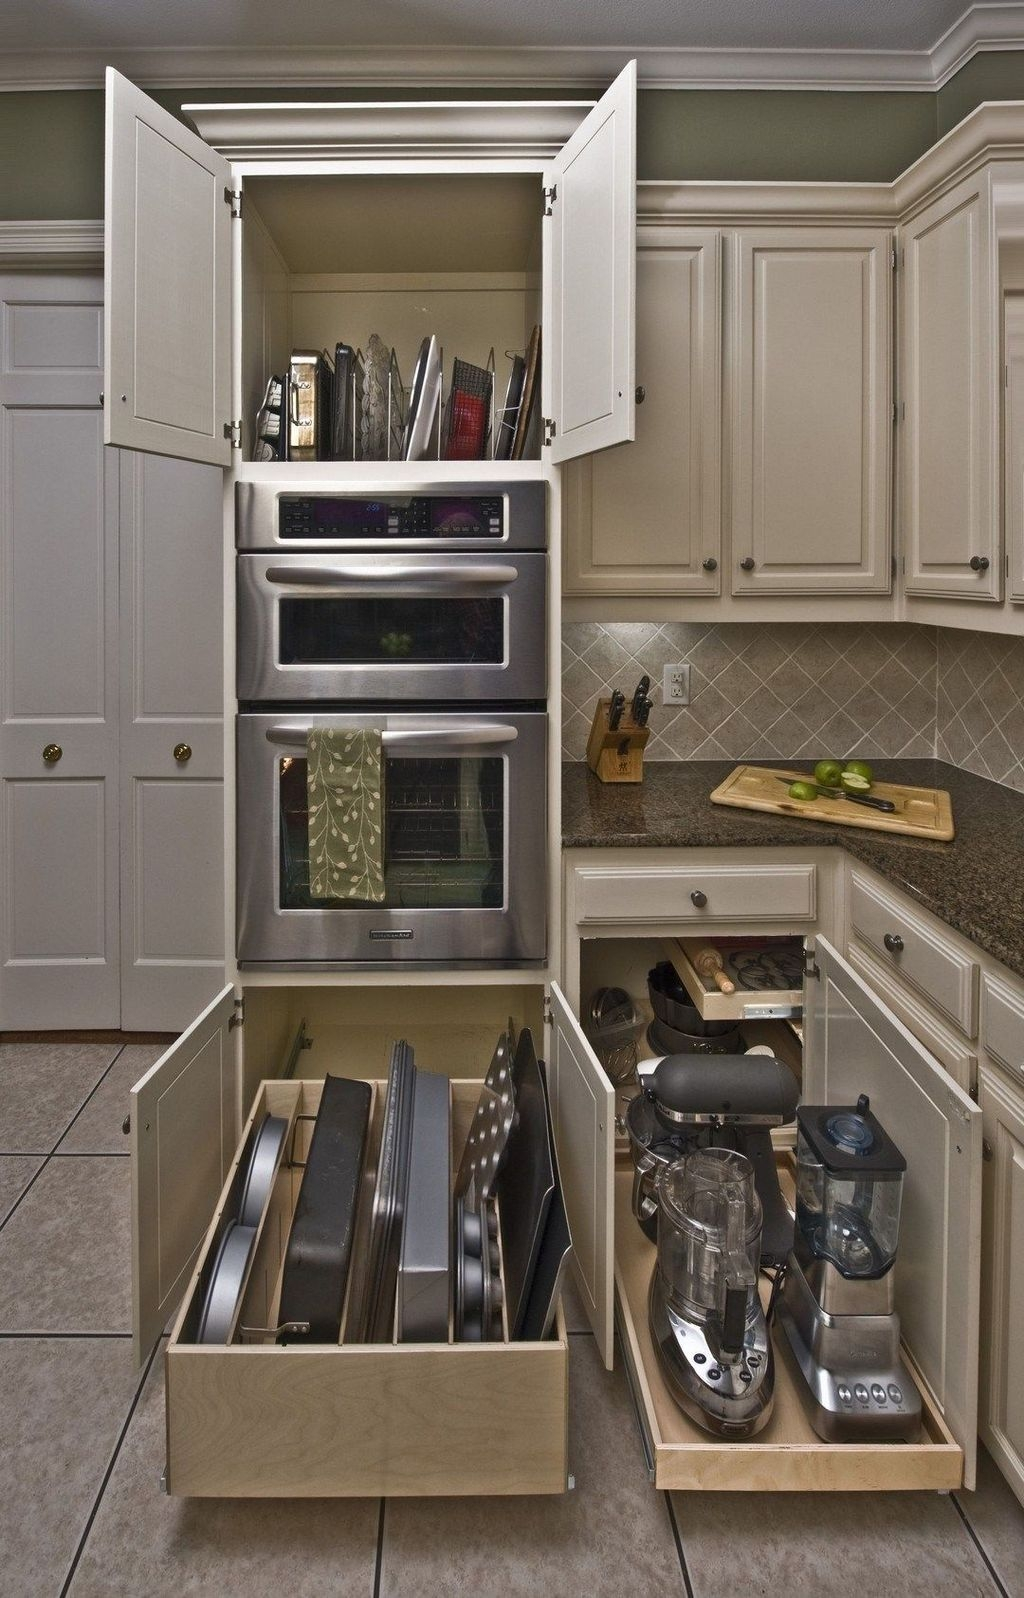 Glamour Kitchen Organization Decor Ideas To Try Right Now22